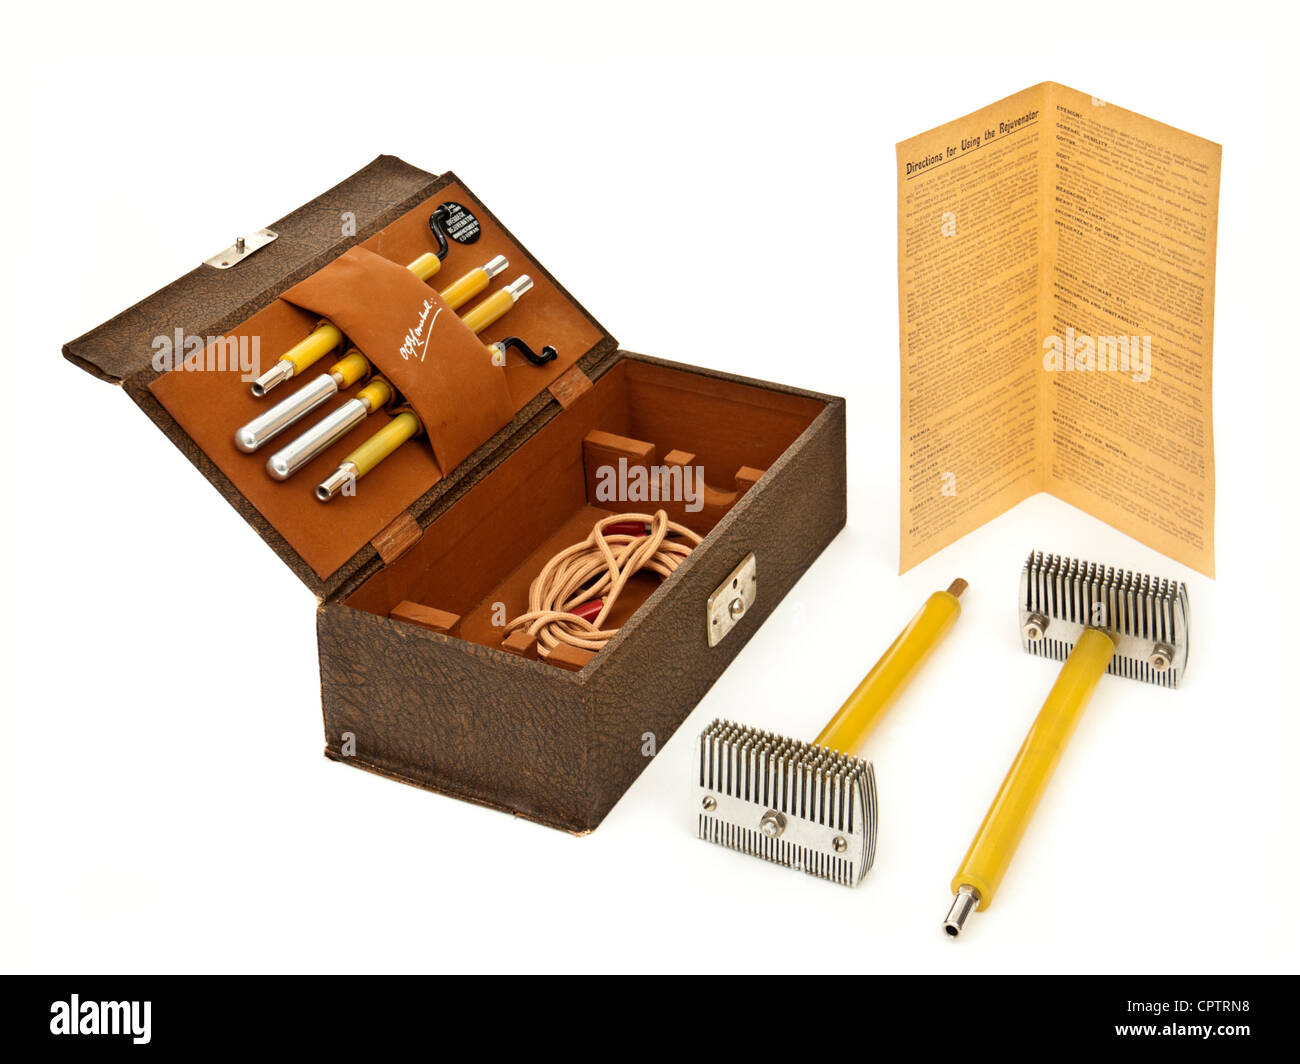 Rare 1925 'Overbeck Rejuvenator', a quack tool for treating ailments with electric current by Dr Otto Overbeck. - Stock Image